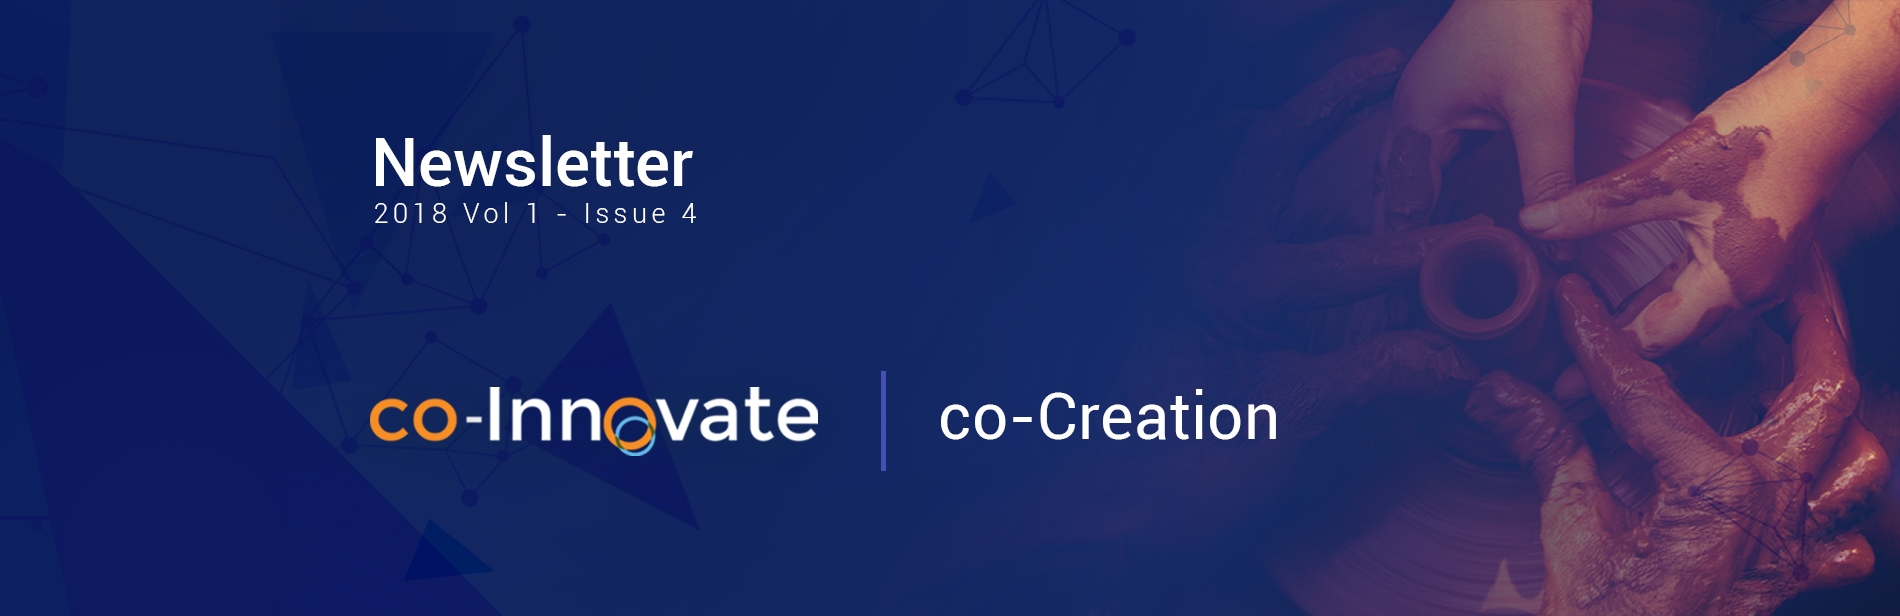 co-Innovate Newsletter 2018 Vol 1 – Issue 4 1